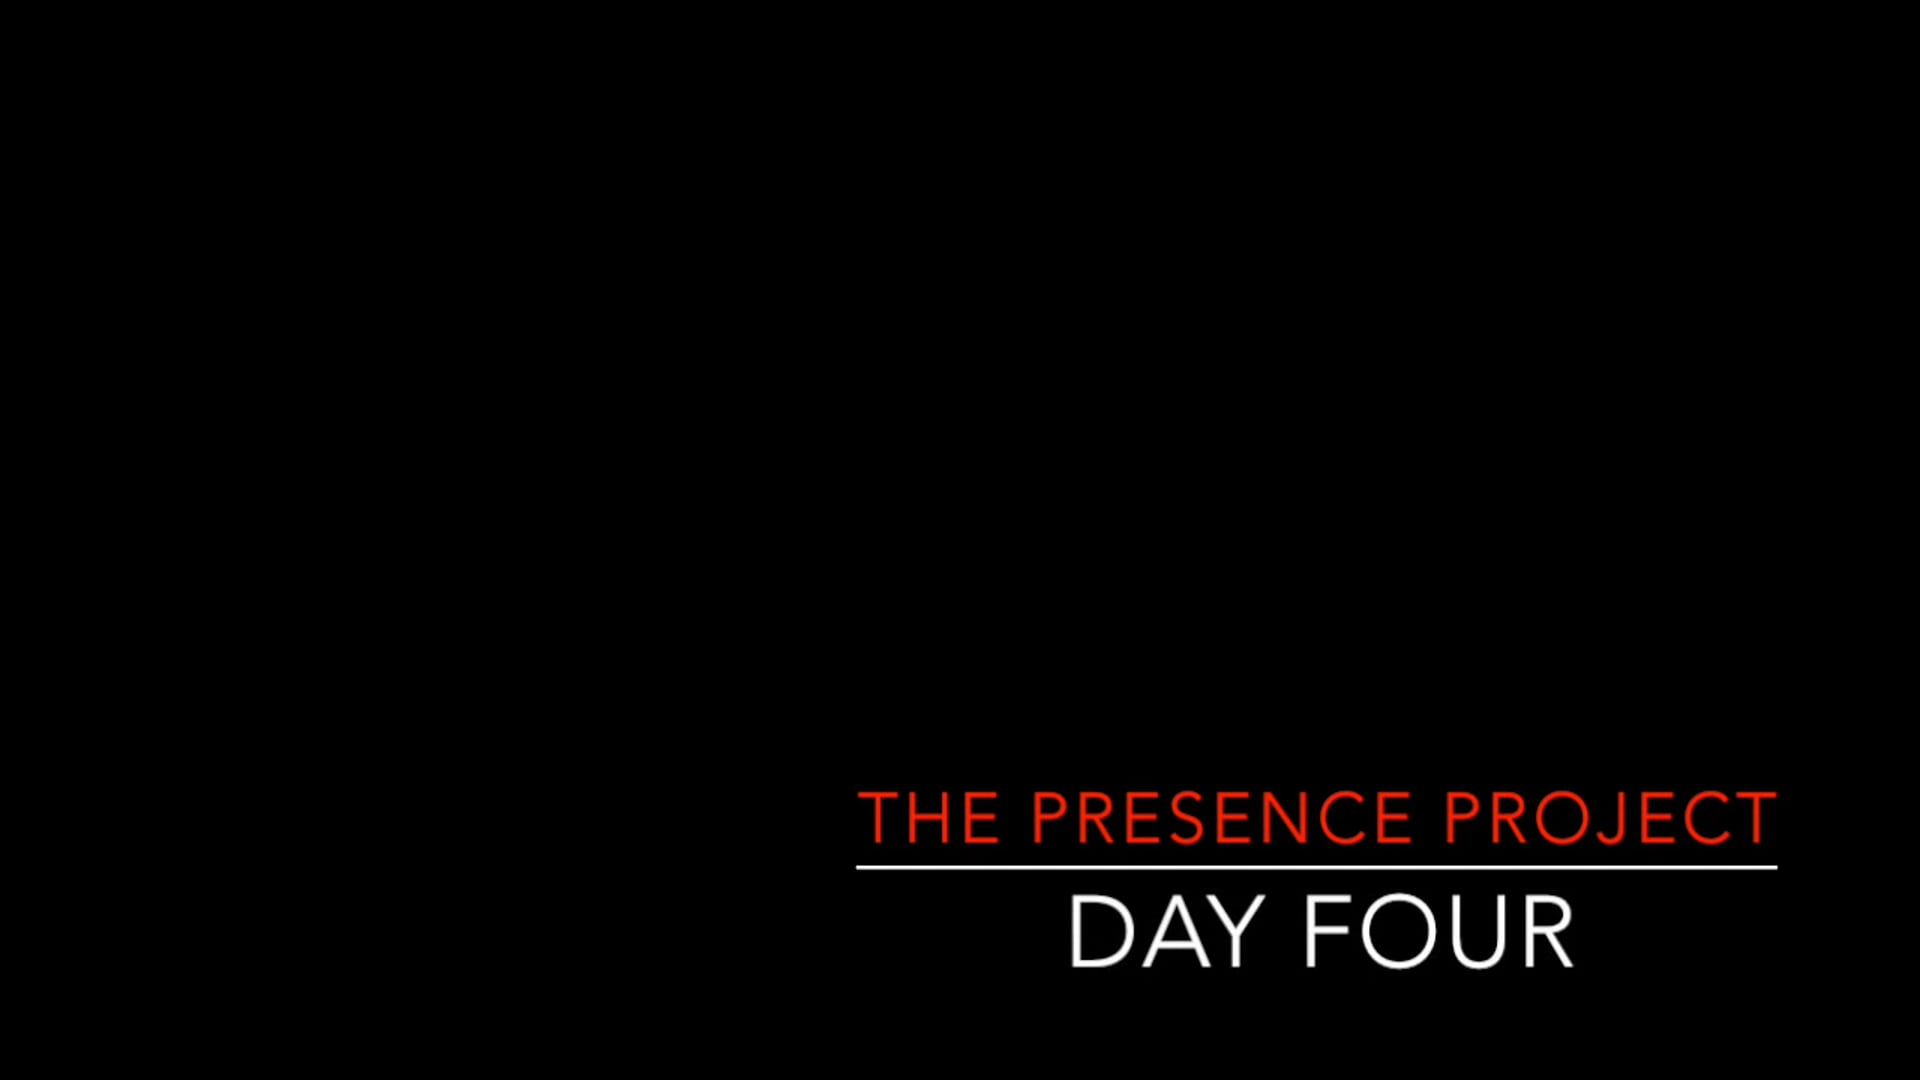 Presence Project, Day 4